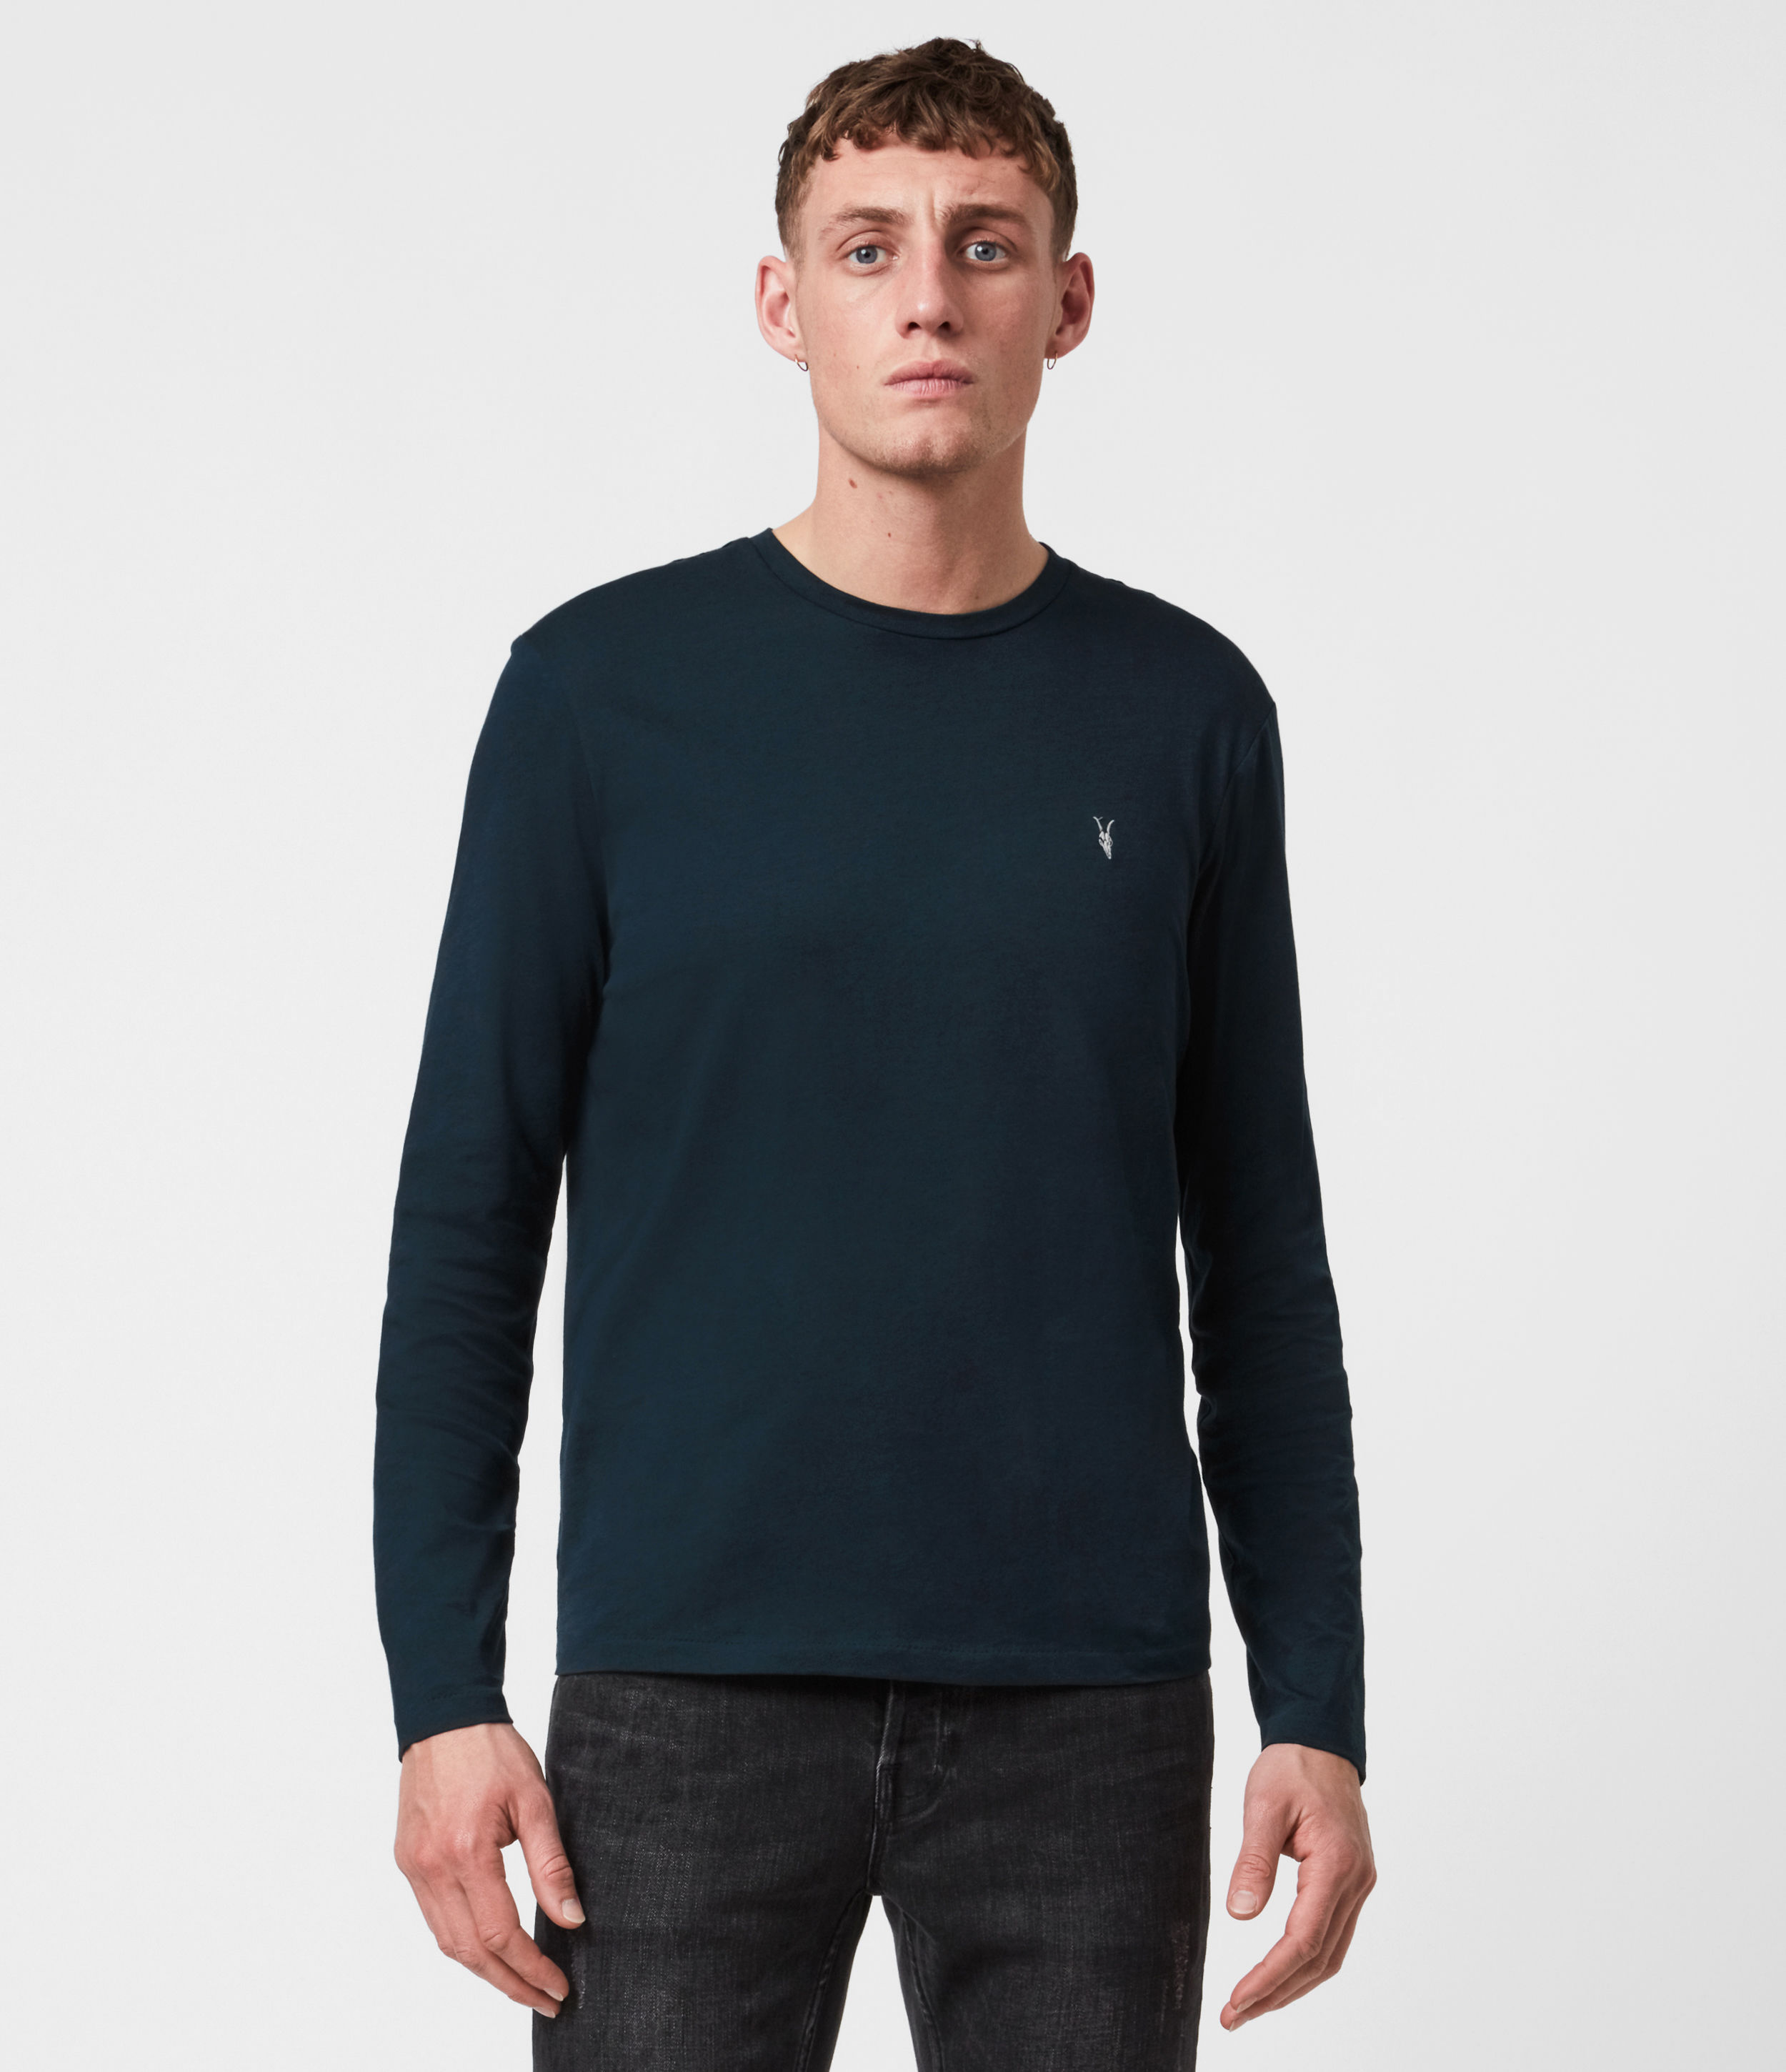 AllSaints Tonic Long Sleeve Crew T-Shirt